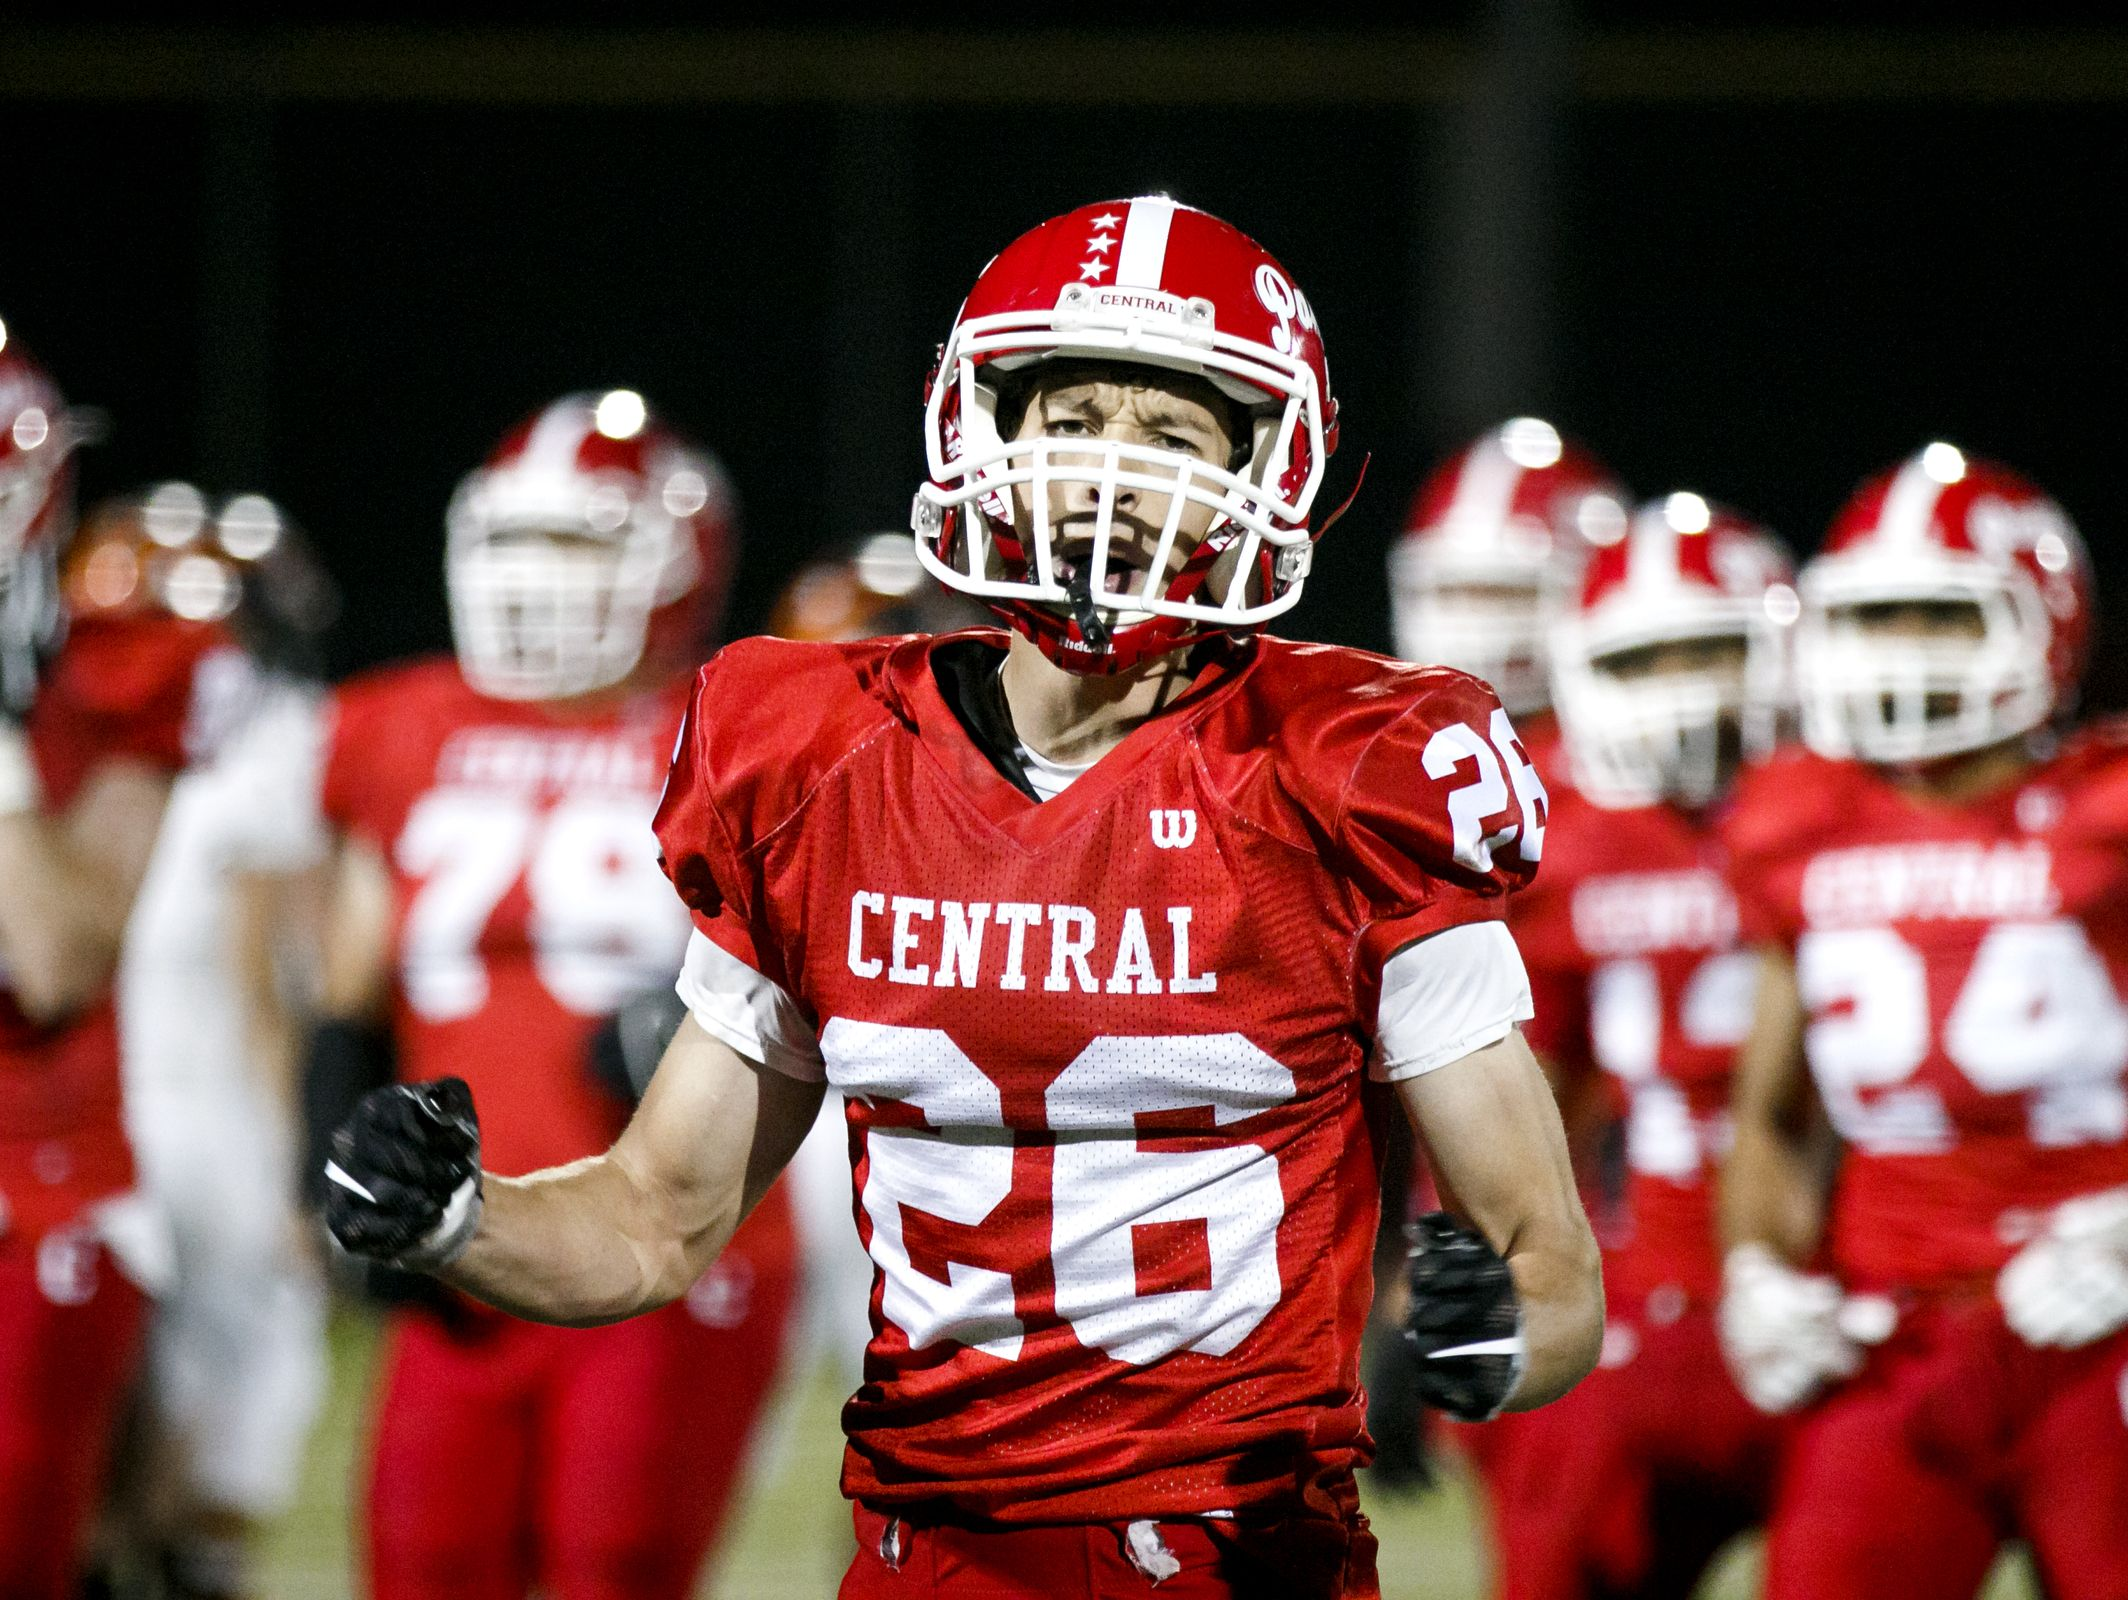 Central's Peter Mason cheers after the team scores another touchdown in a game against Dallas on Friday, Sept. 30, 2016, at Central High School in Independence. Central won the game 21-20.